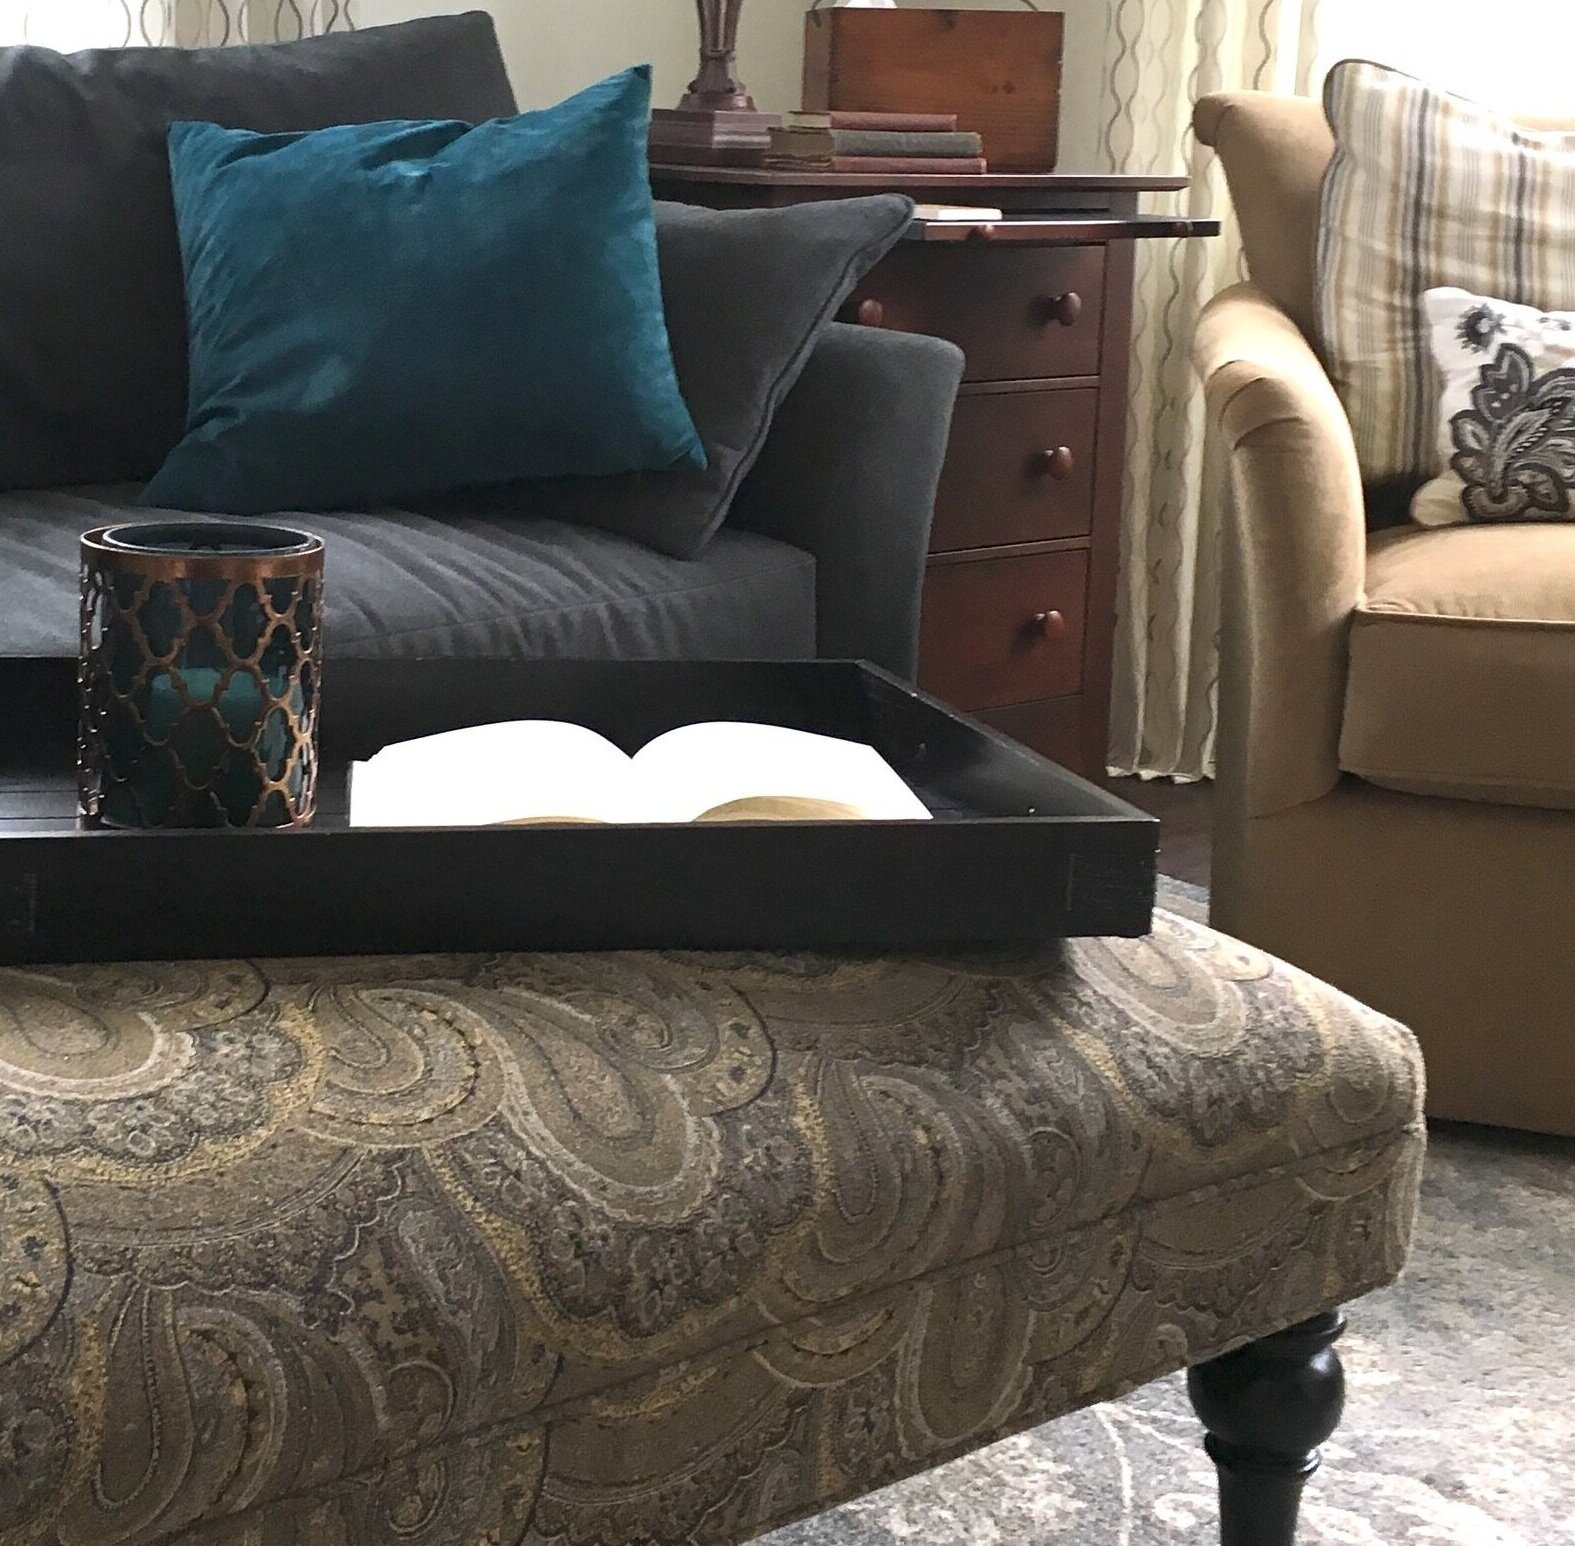 We used our client's favorite neutrals on her new furnishings - menswear inspired gray wool paired with camel micro corduroy and an ottoman that mixes shades of gray and camel in a gorgeous paisley - all set on a new-traditional grey patterned area rug with touches of beige and teal.